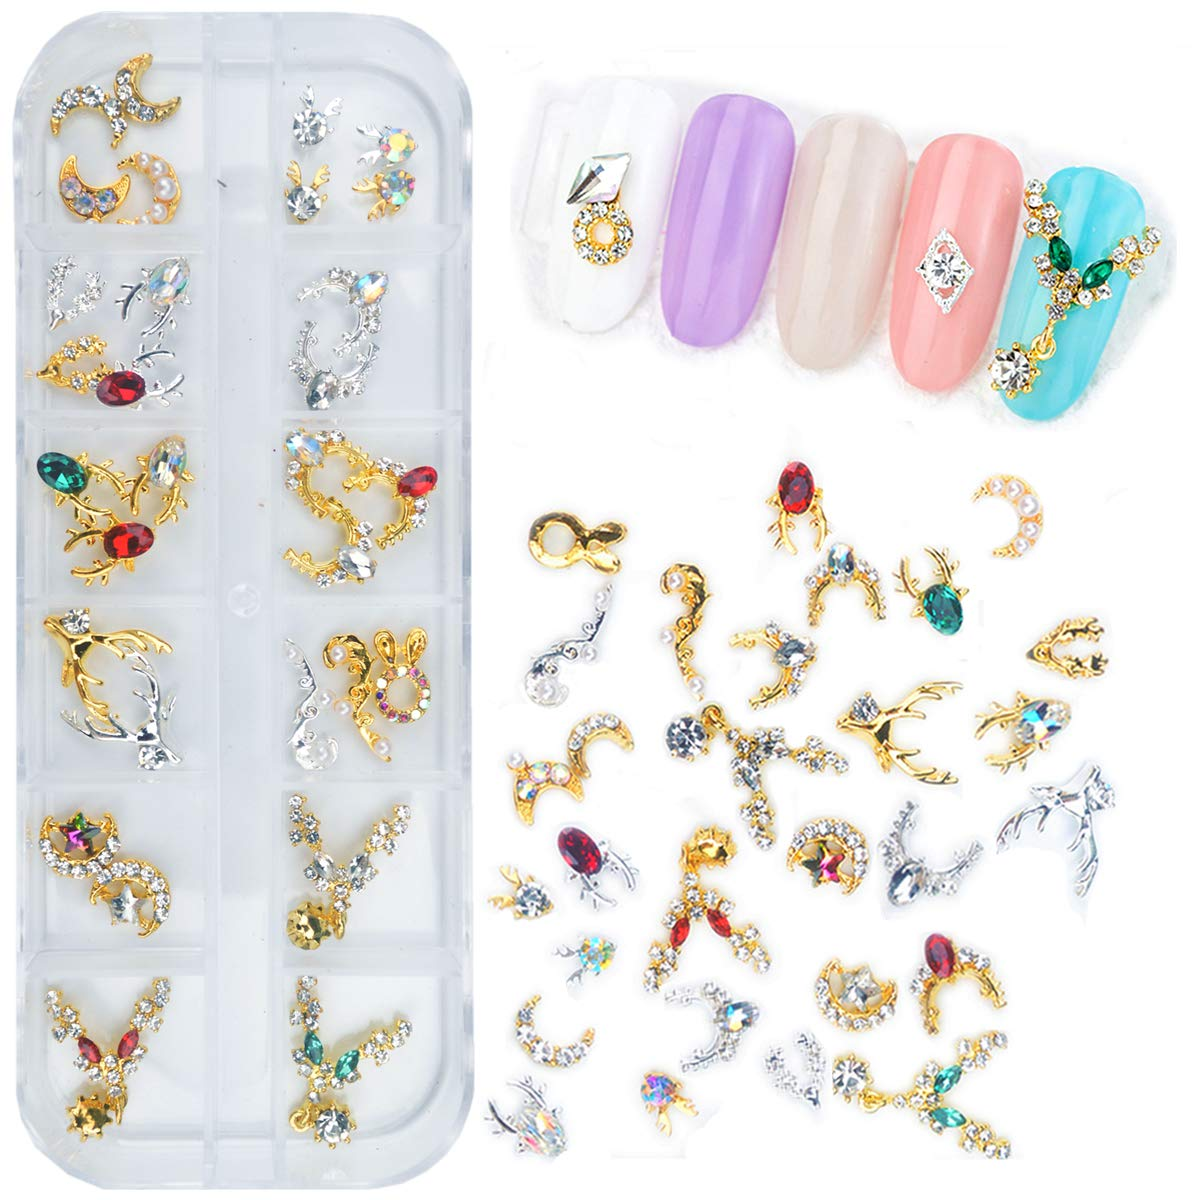 editTime Charms Metal Alloy Silver Gold 3D Nail Art Bow Crown Elk Butterfly Rhinestone Crystal Diamonds Nail Studs Manicure Jewelry for Crafts DIY Nail Art Tip (Elk)